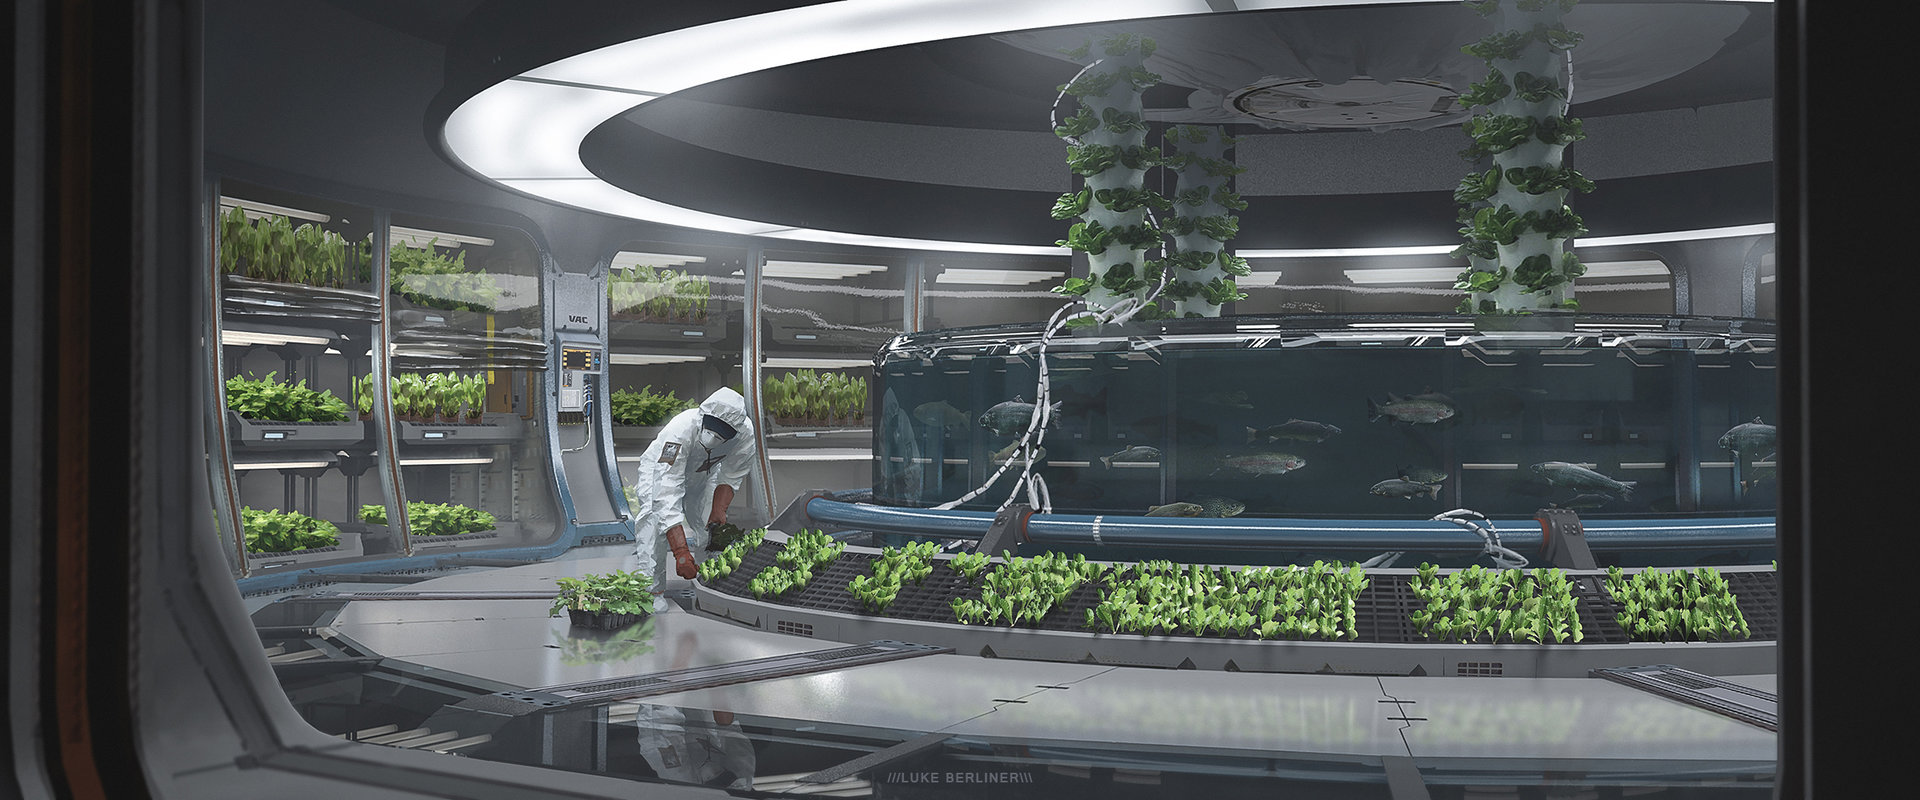 greenhouse space station - photo #7